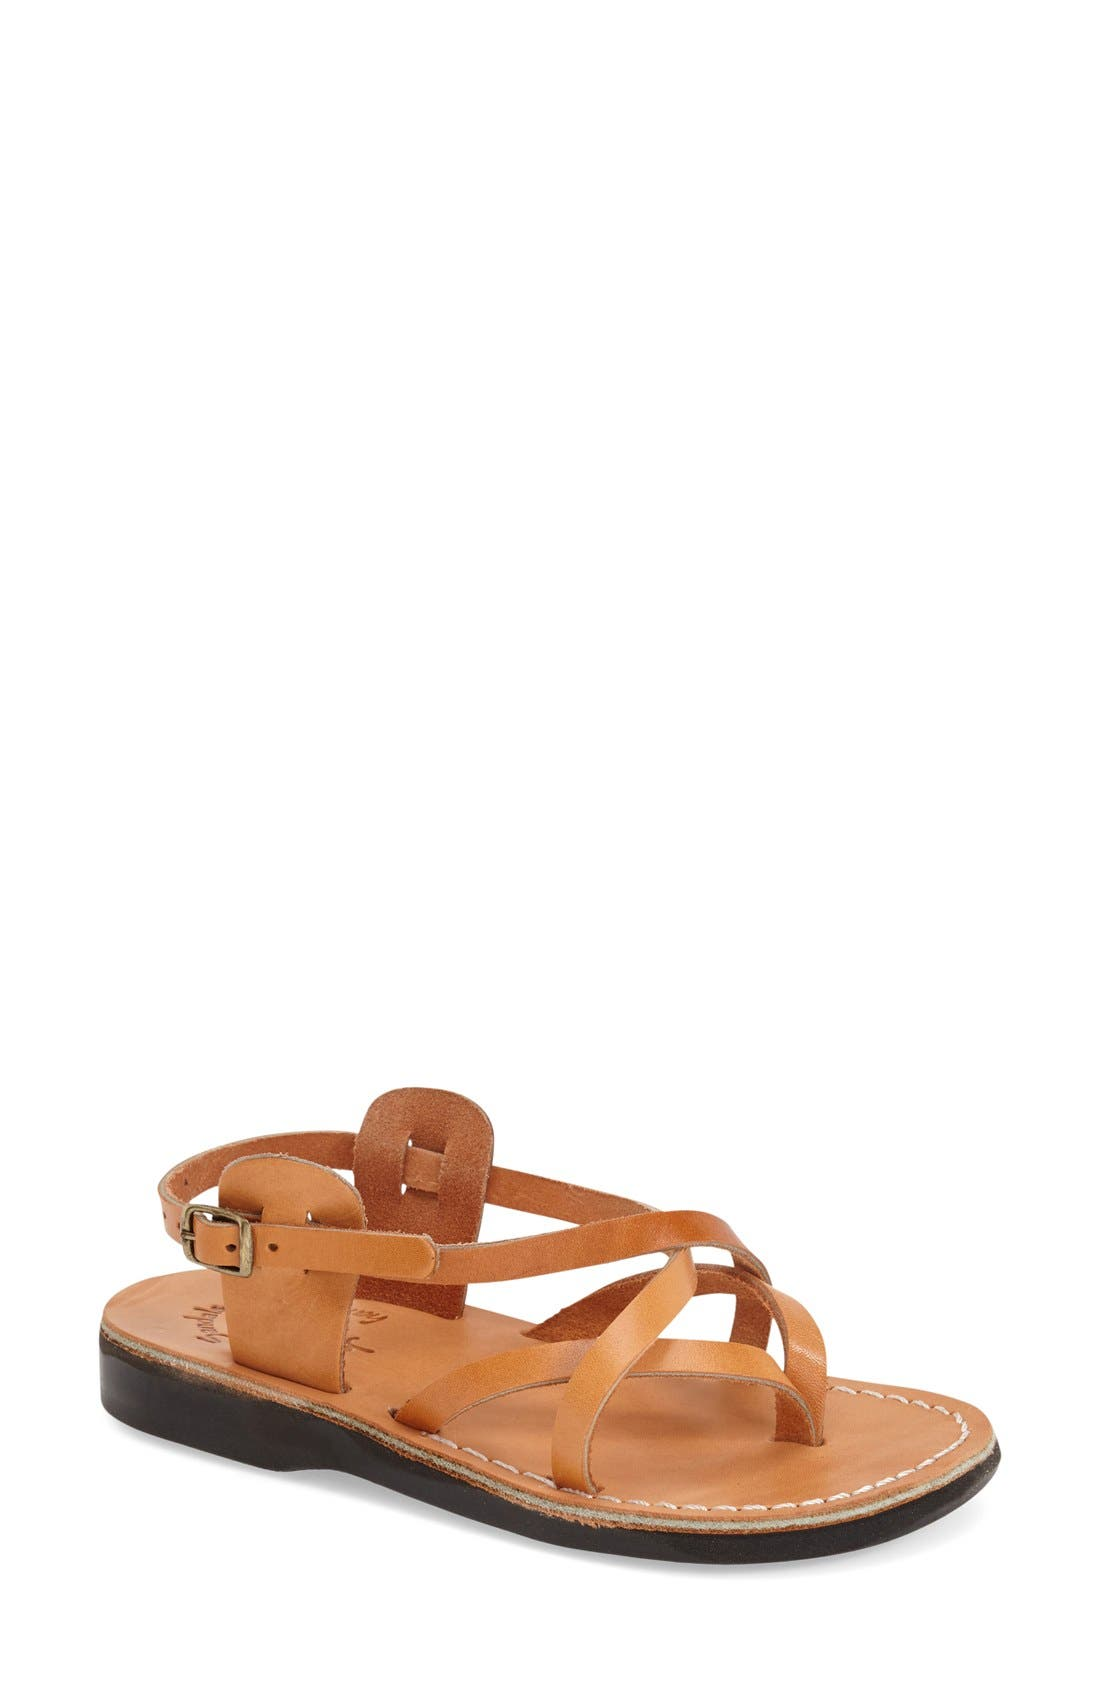 'Tamar' Strappy Sandal,                         Main,                         color, 201